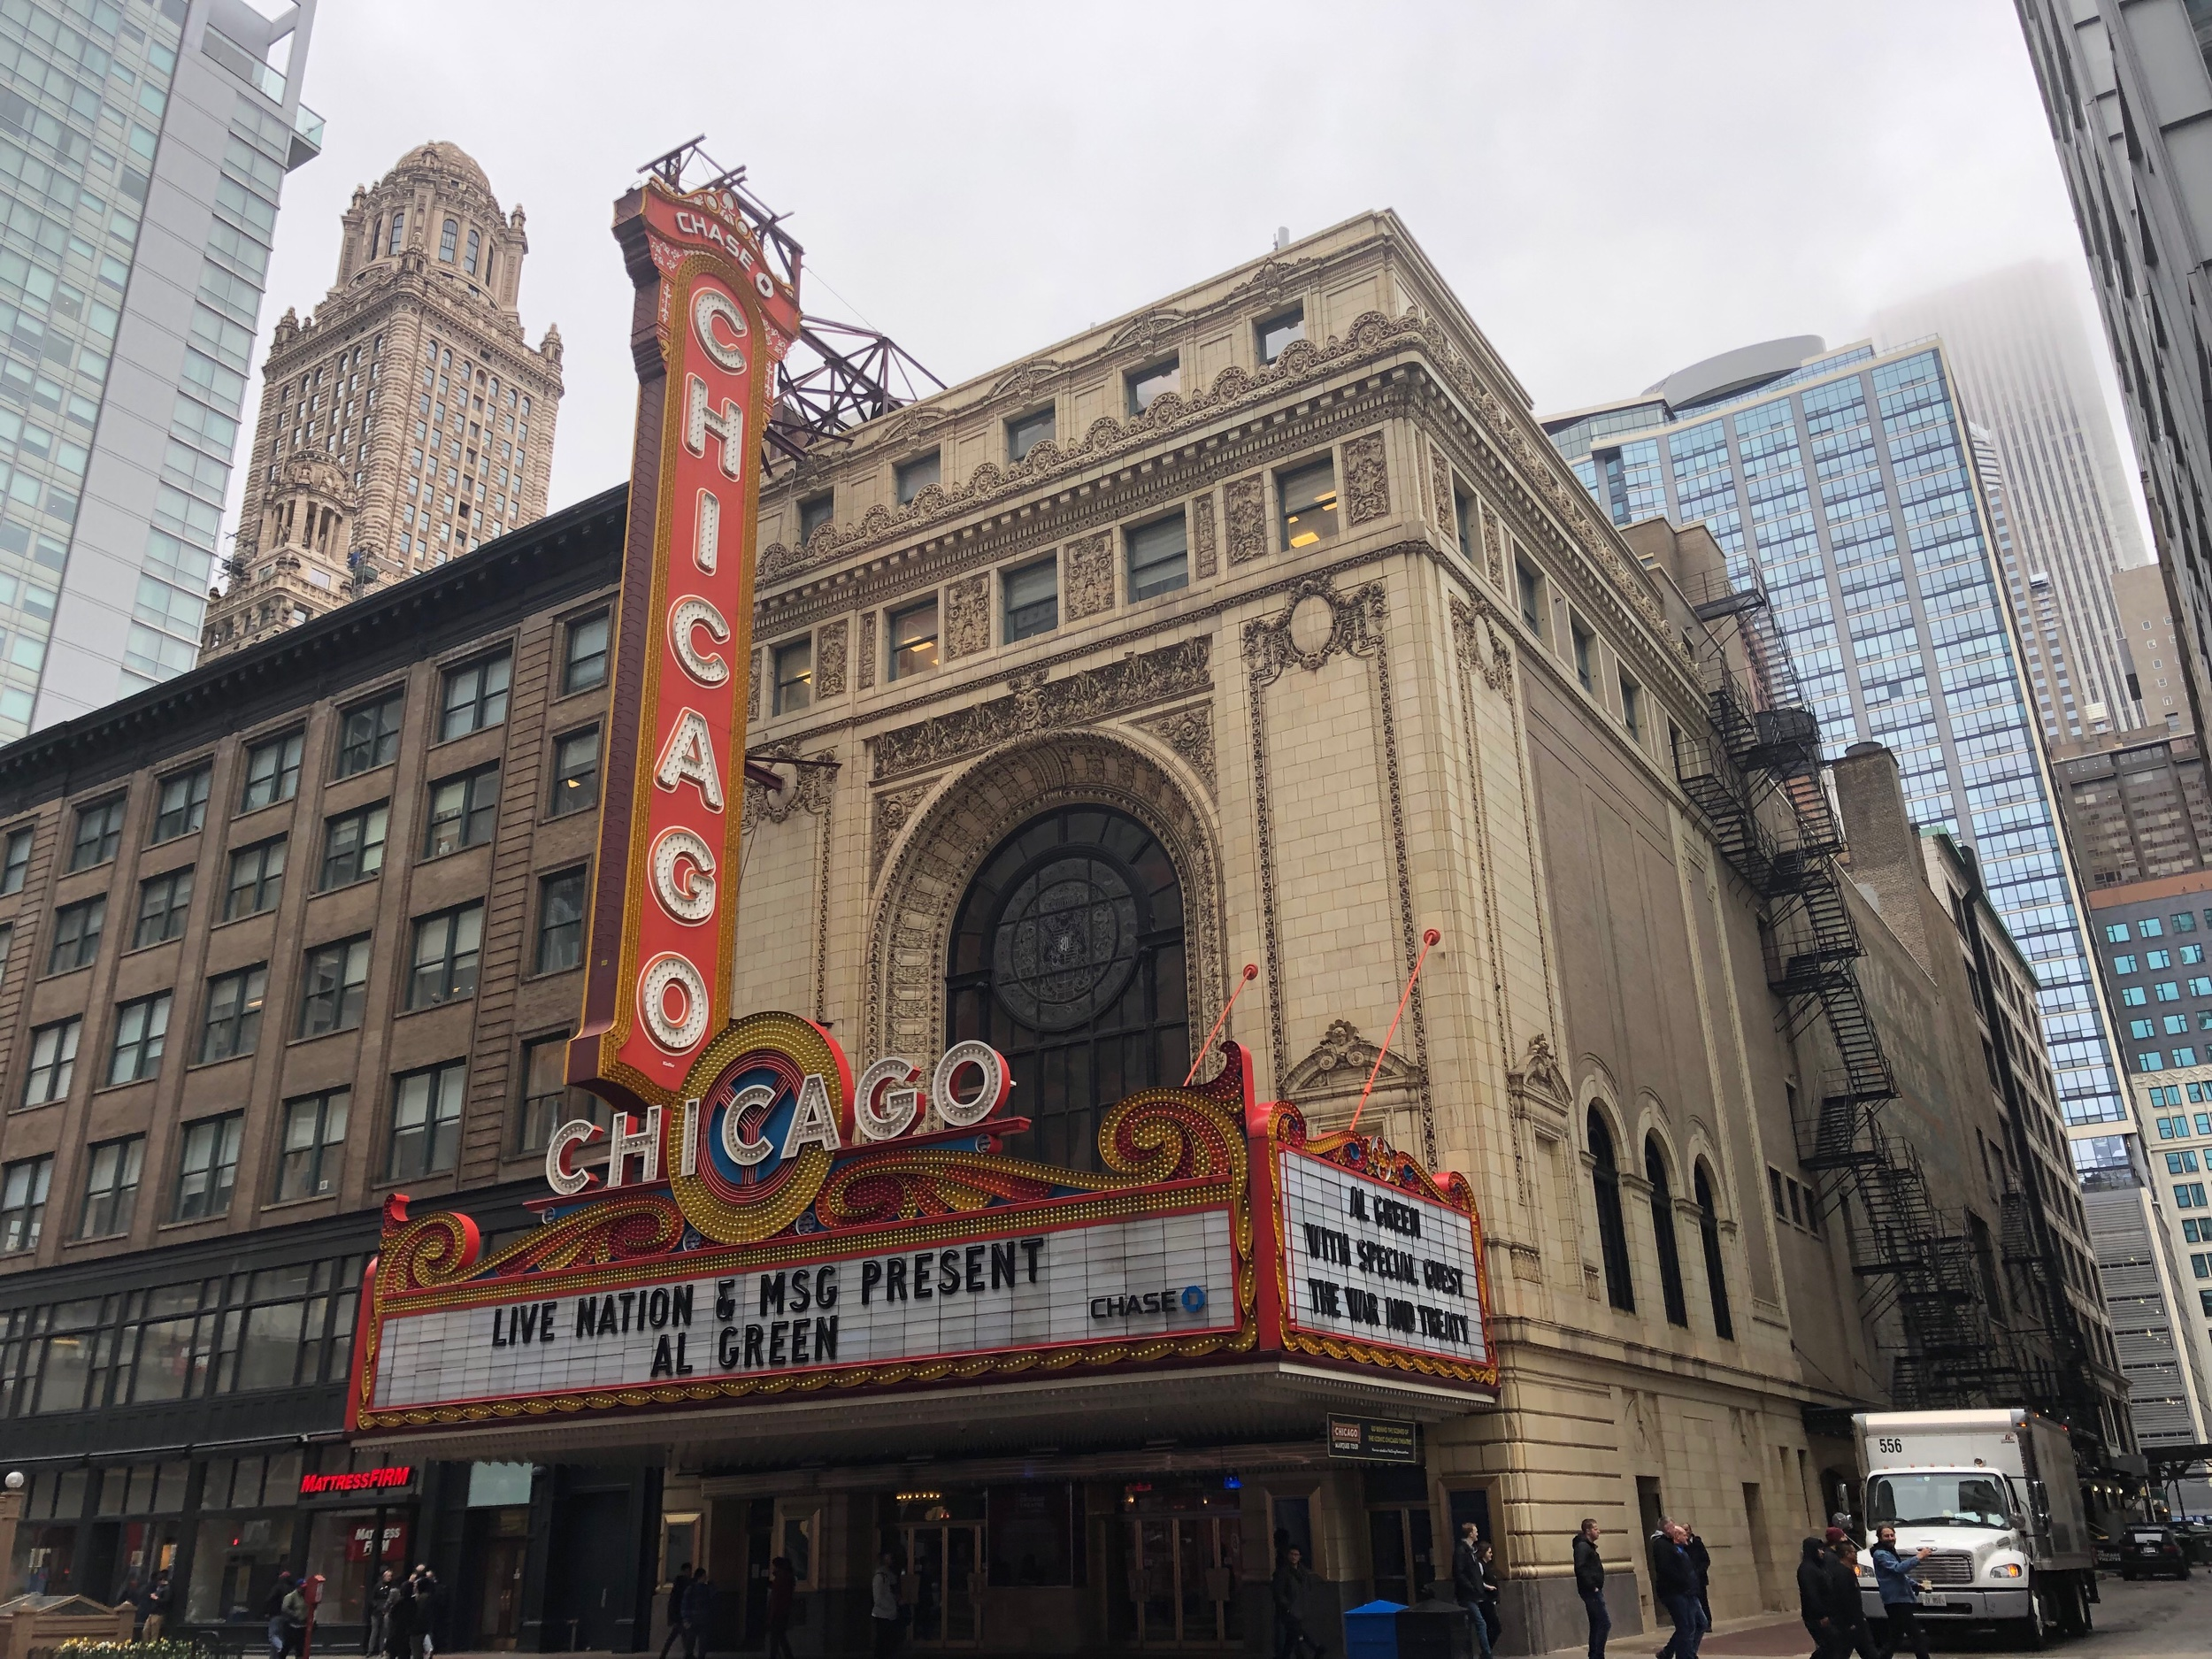 The Chicago Theatre - Historic Theatre Since 1921